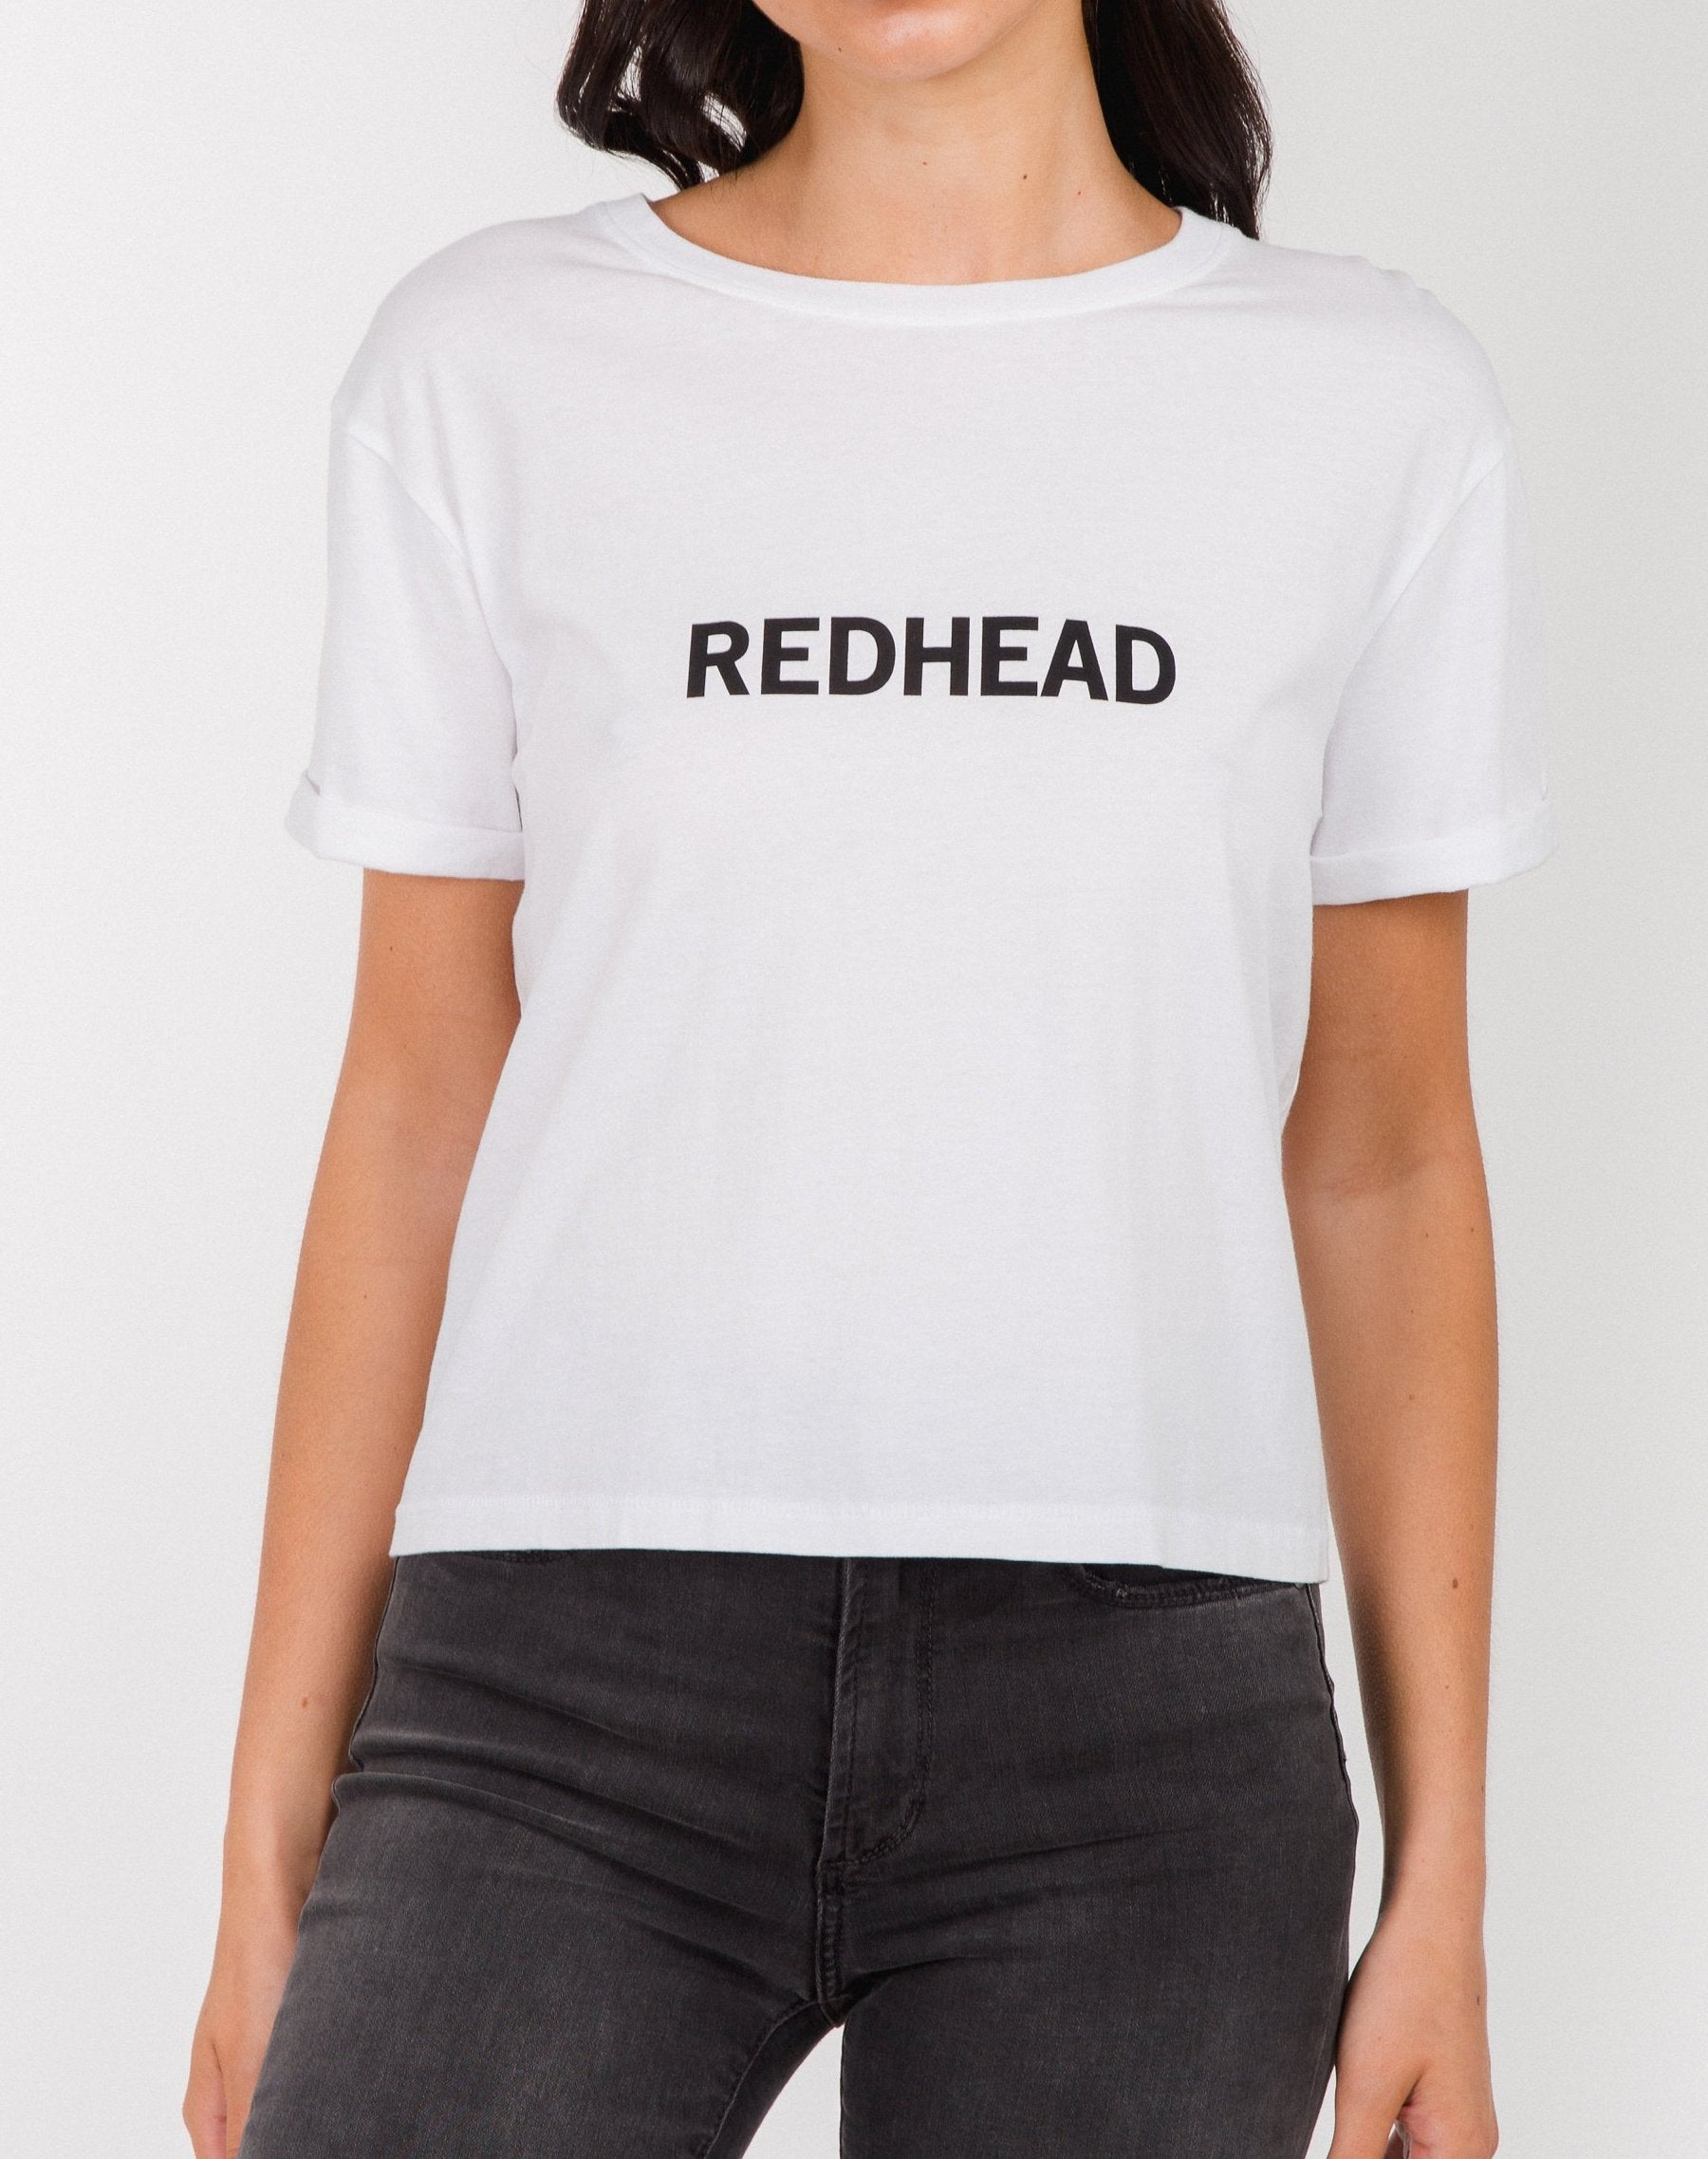 Photo of the Redhead cropped tee in white by Brunette the Label.